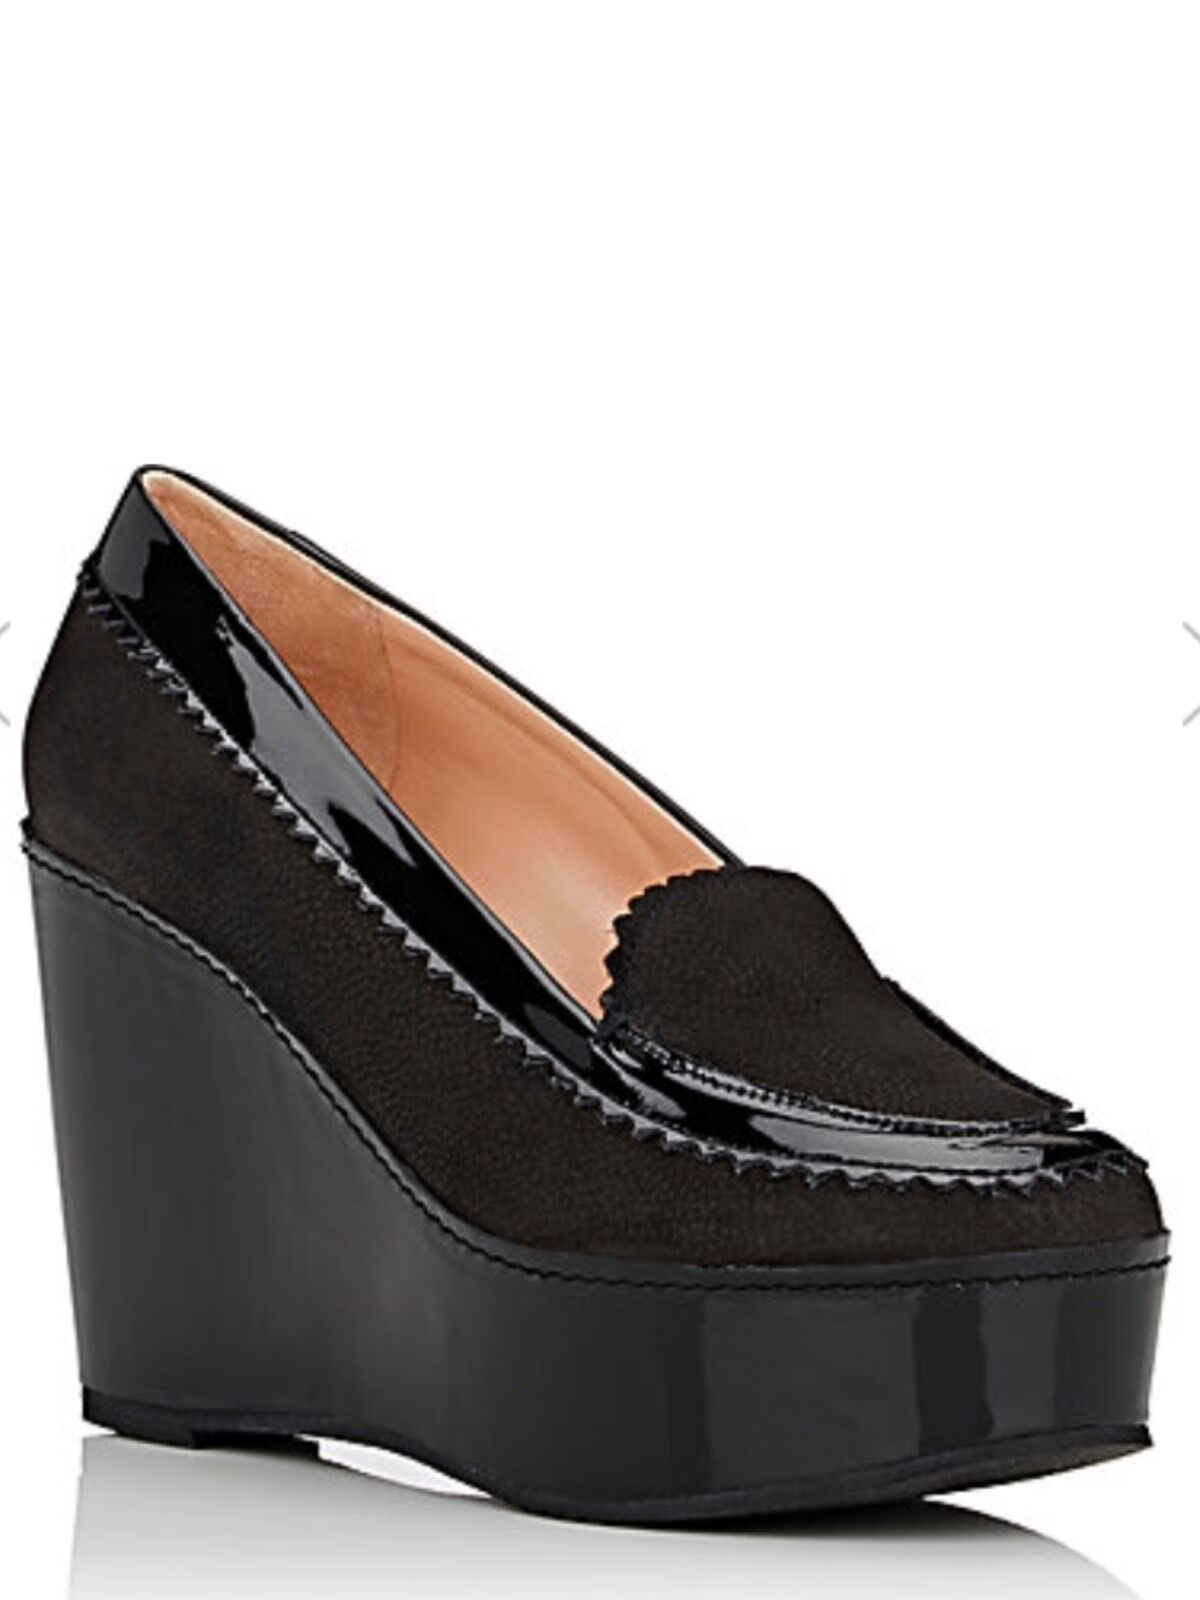 ROBERT CLERGERIE Ursuled Platform Wedge Loafers Price 750. Sell 299.99